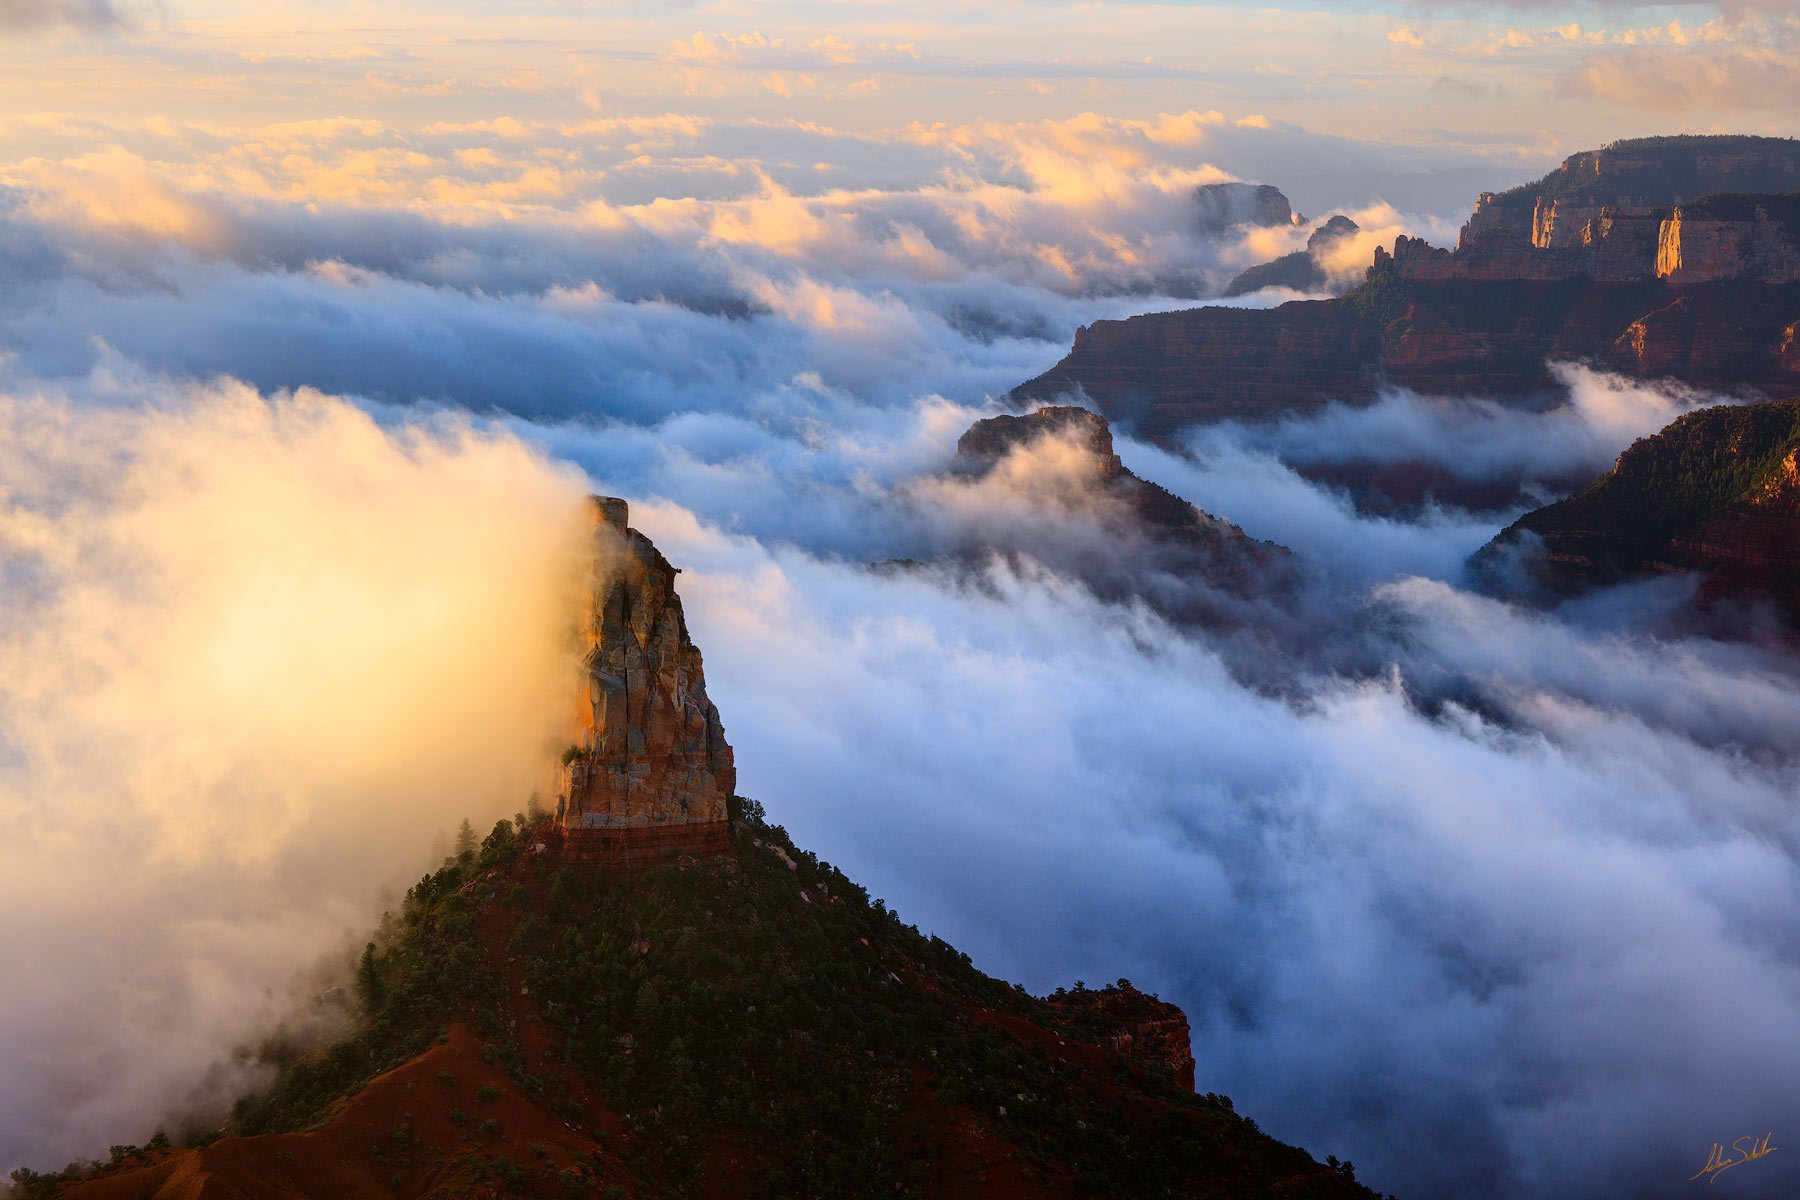 AZ, Arizona, Clouds, Grand Canyon, Hayden, Mount Hayden, North Rim, Point Imperial, Weather, Monsoon, Inversion, Dramatic, photo